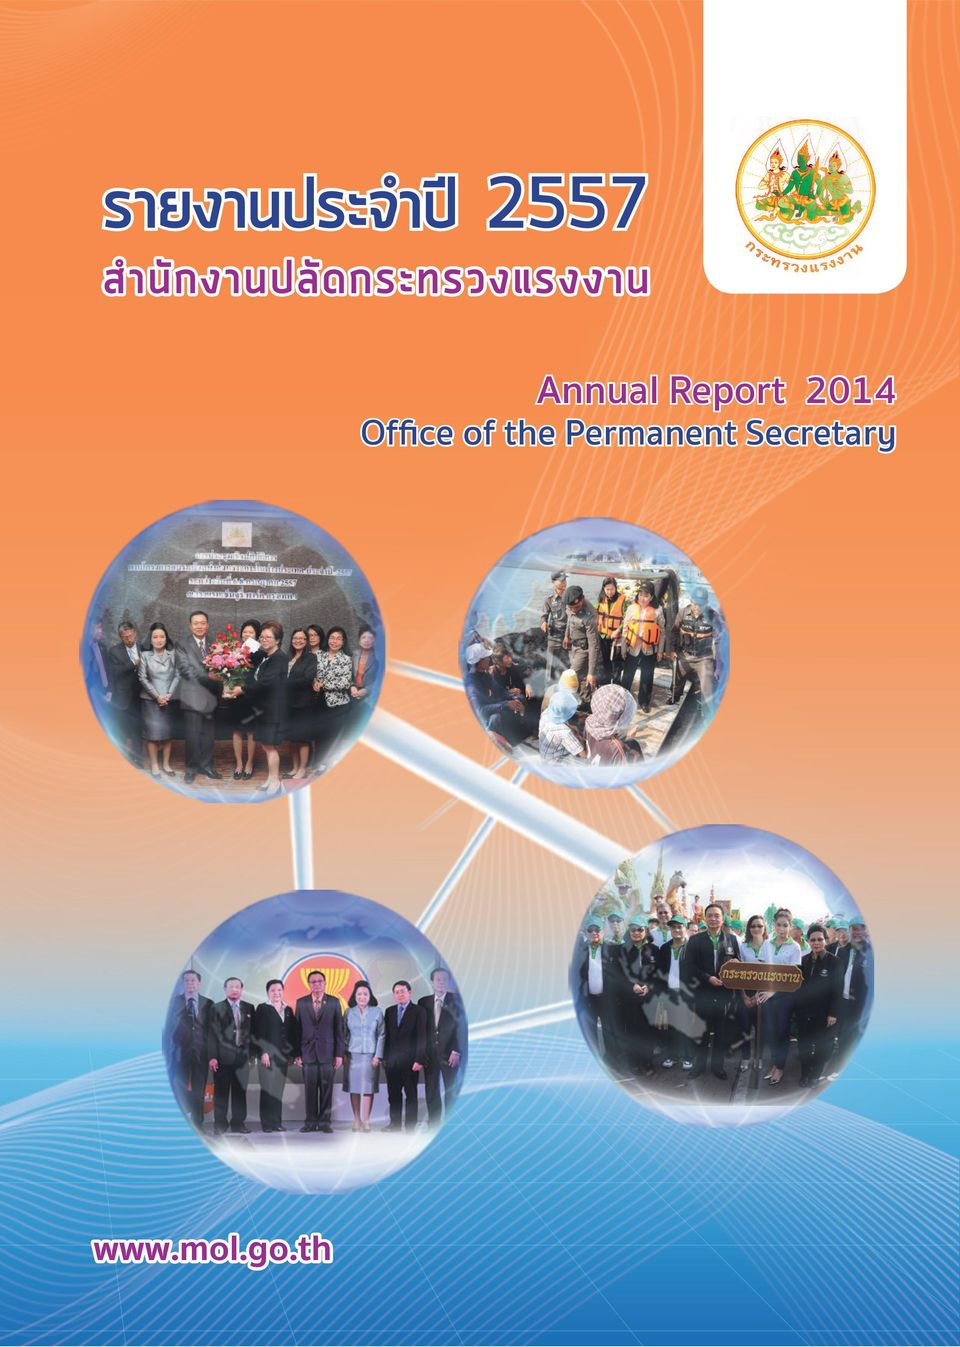 Annual Report 2014 Office